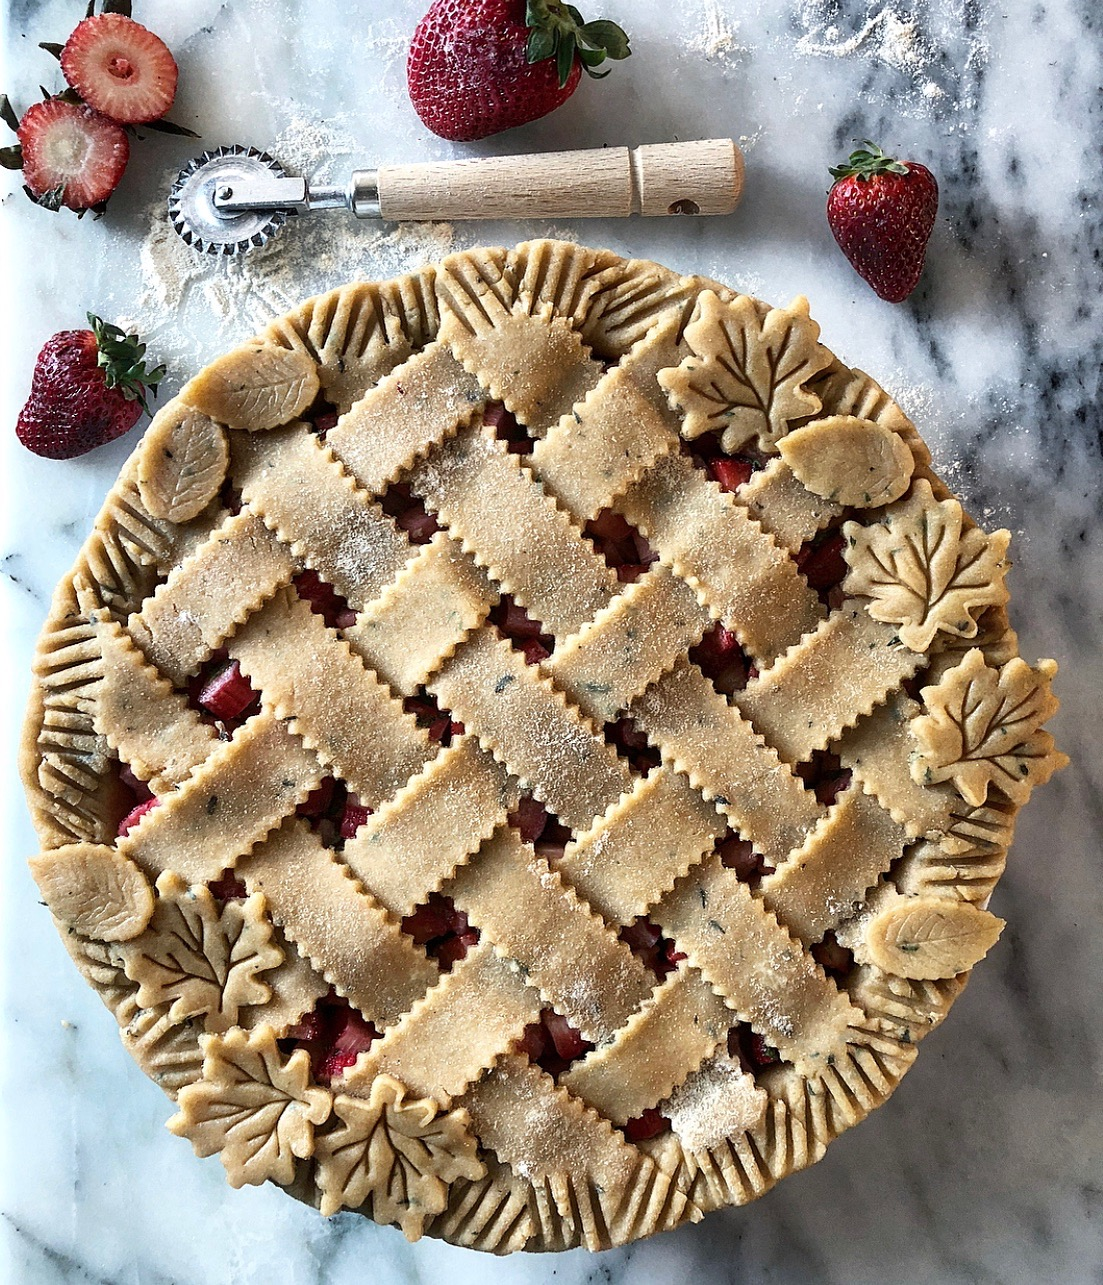 Strawberry Rhubarb Pie with thyme crust